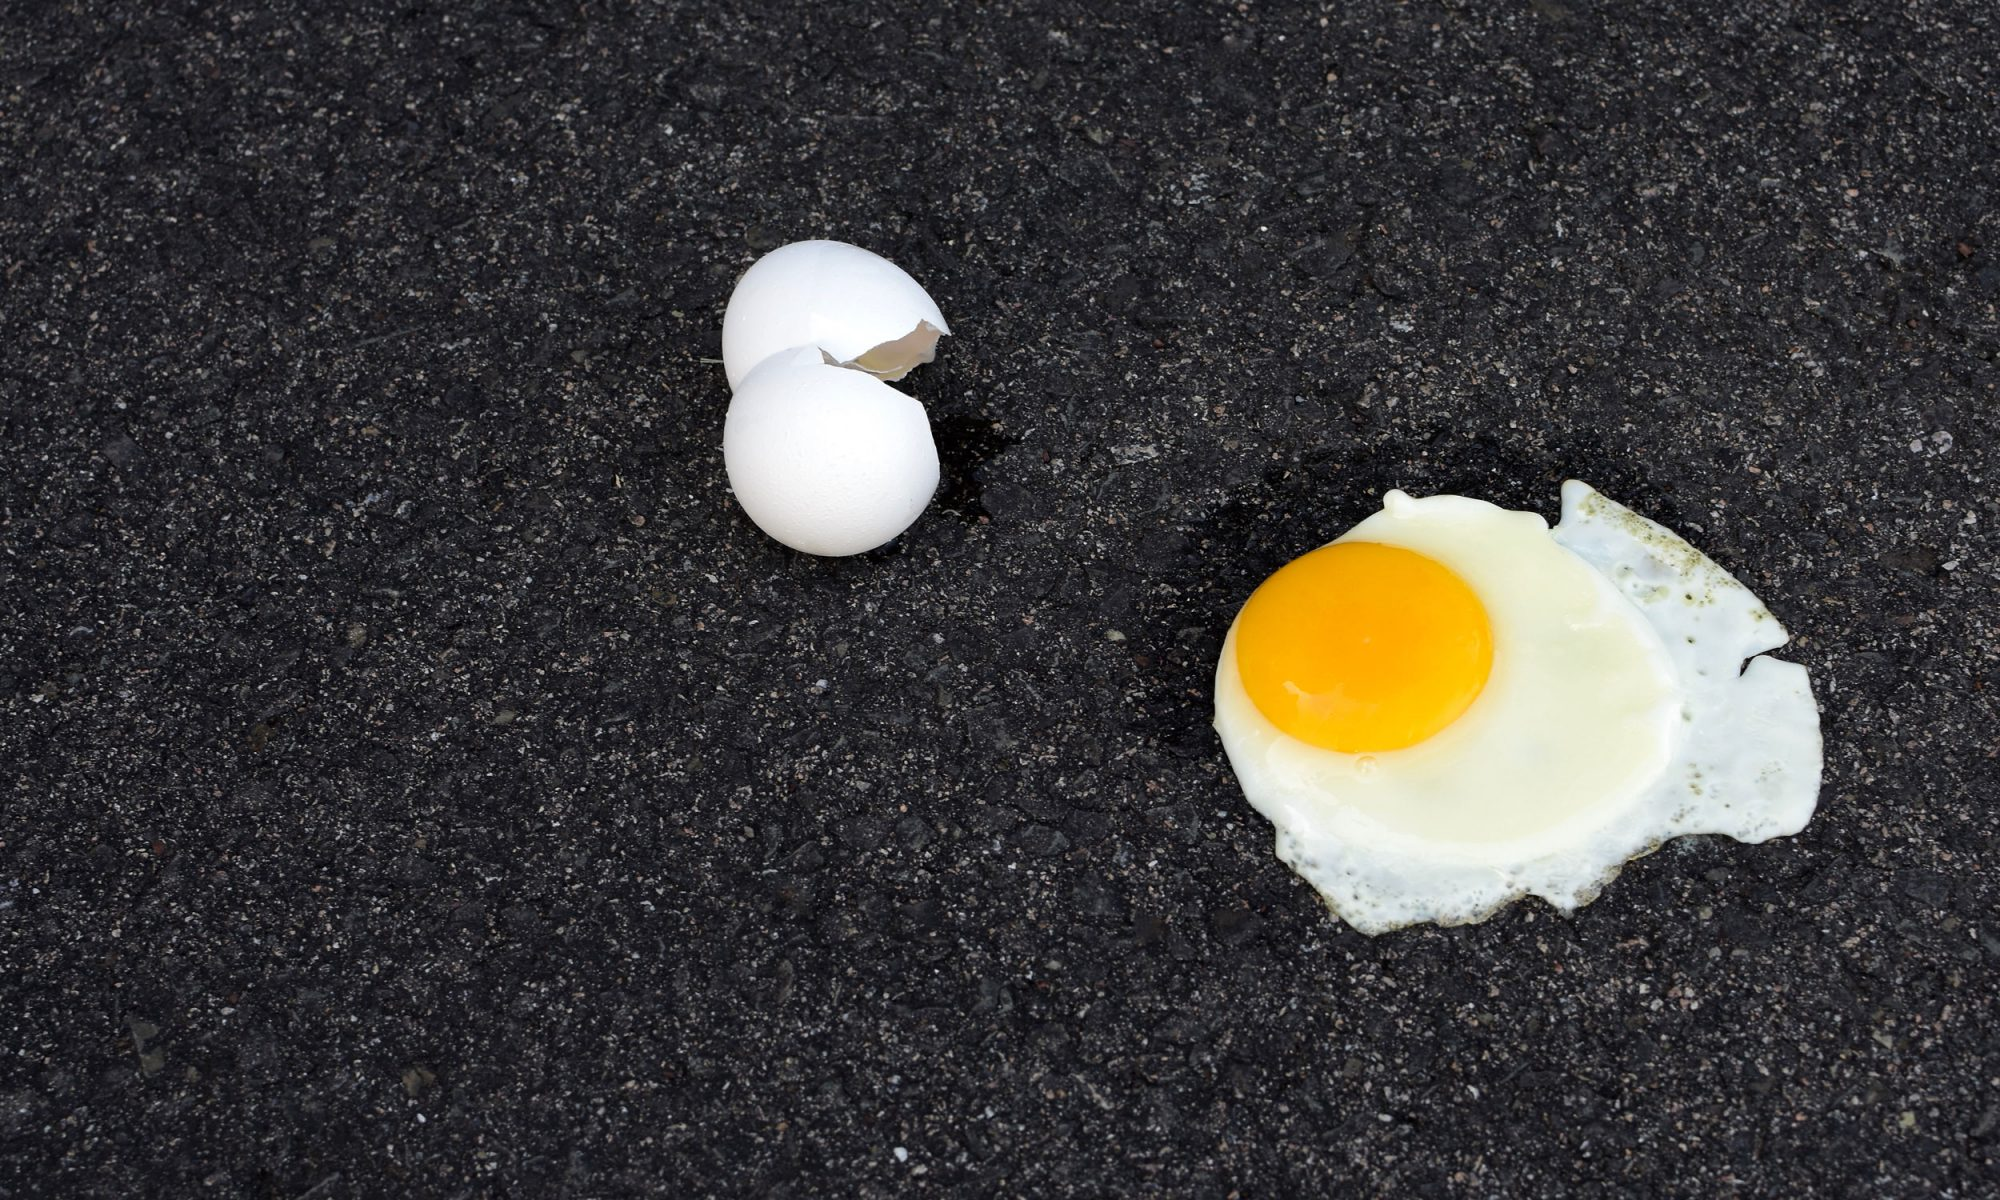 EC: How to Fry Eggs on the Sidewalk